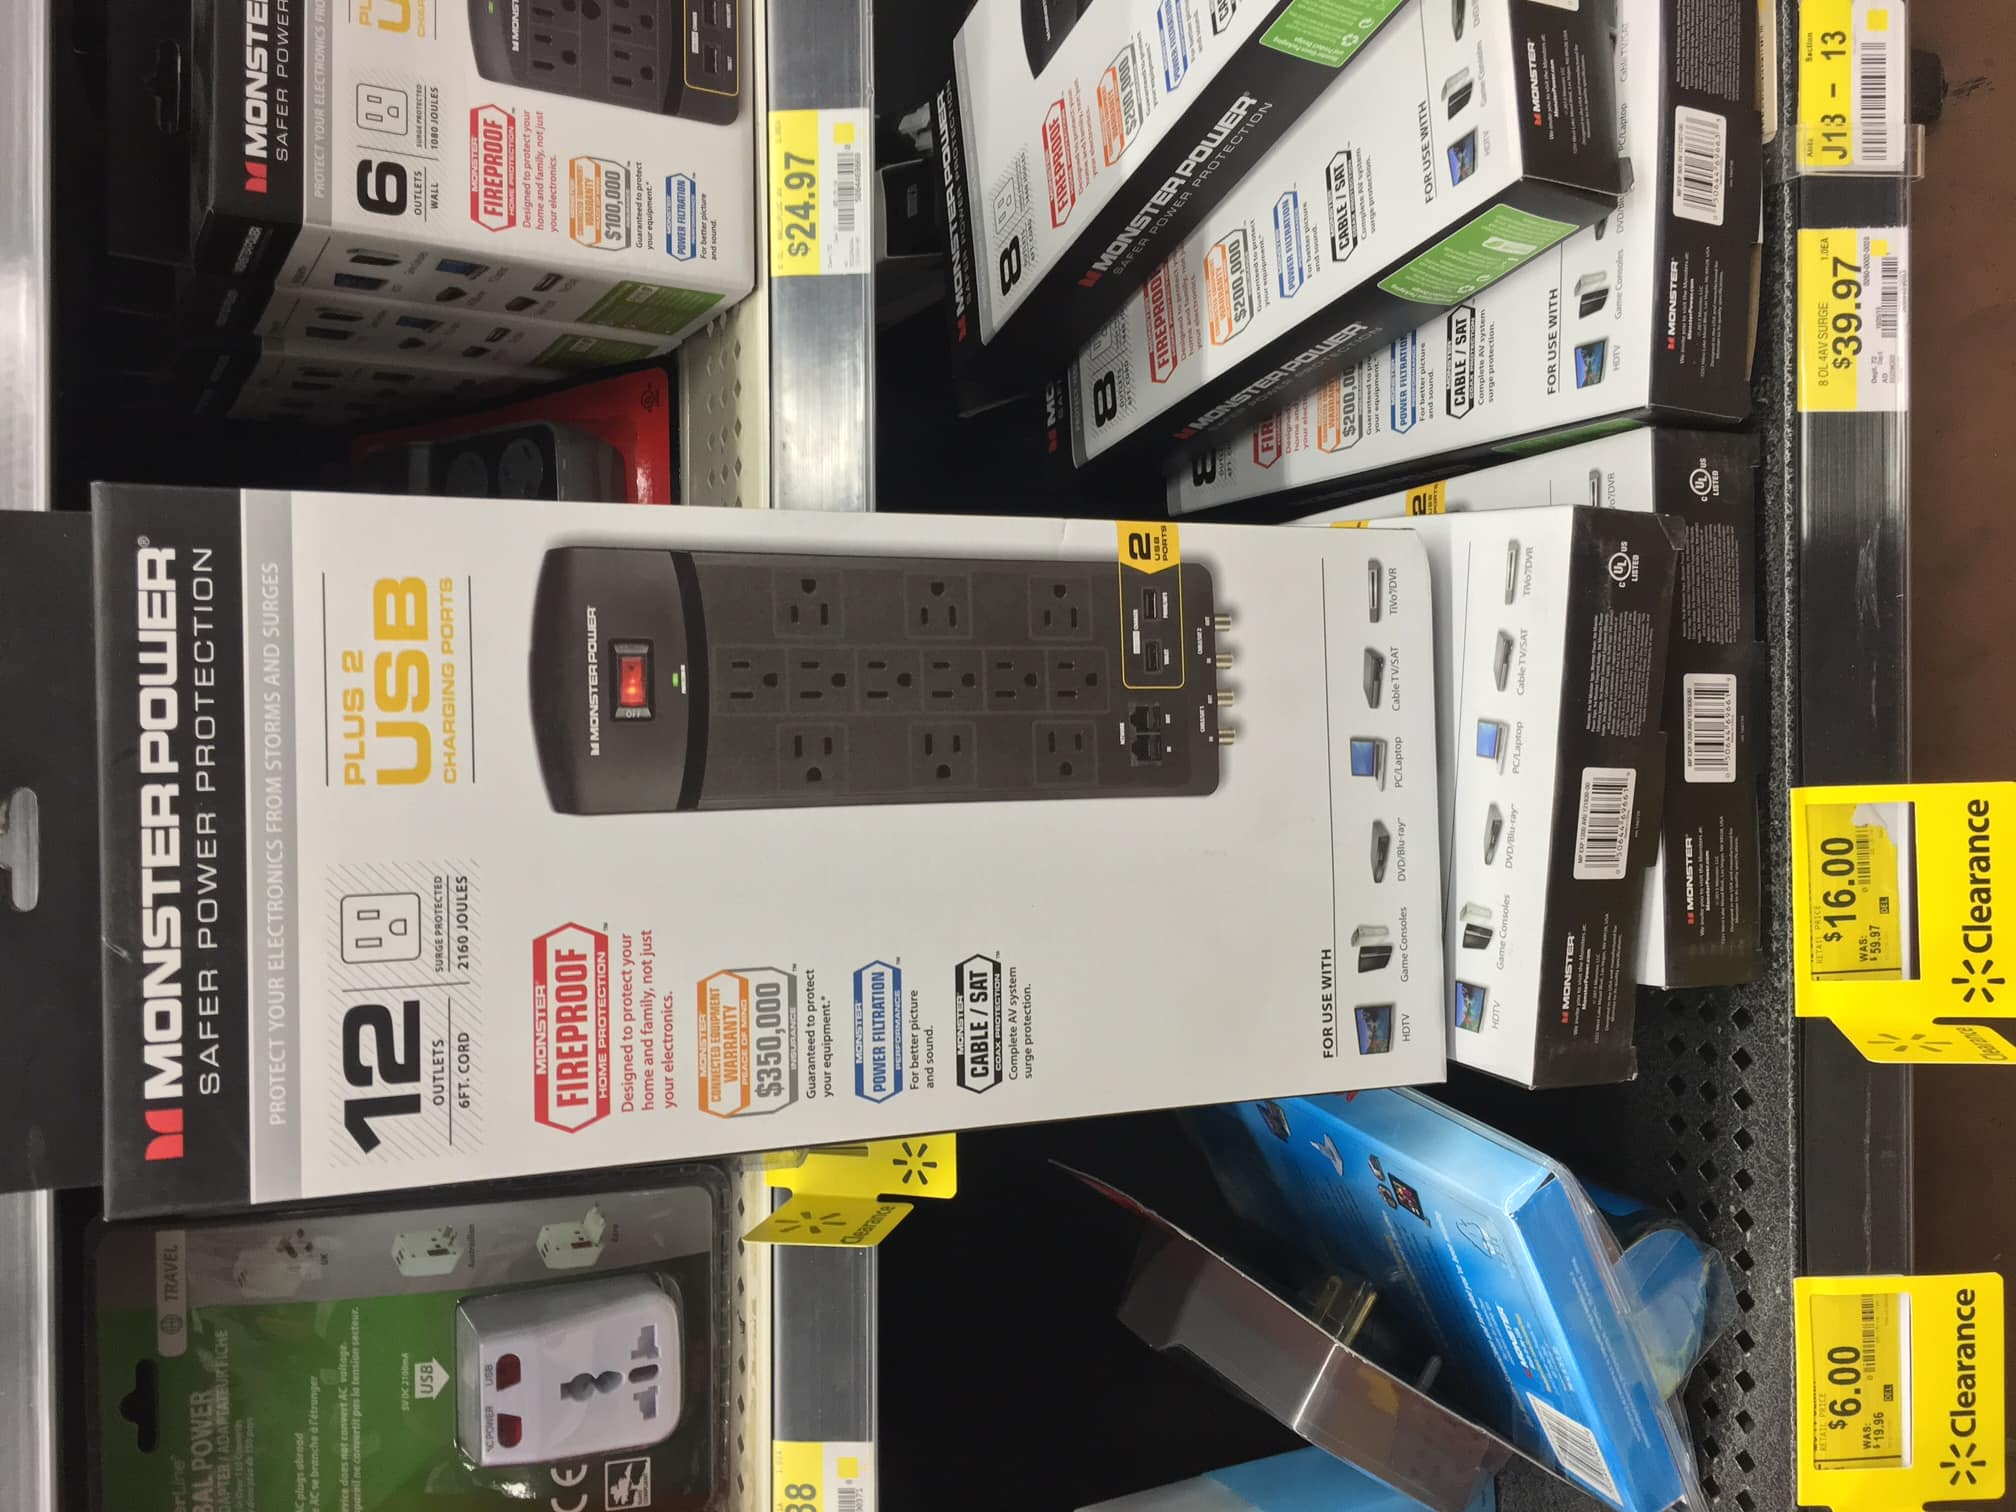 Monster power surge protector 12-outlet 2-USB 2160 Joules for $16 (Originally $60) @ Walmart B&M Clearance YMMV